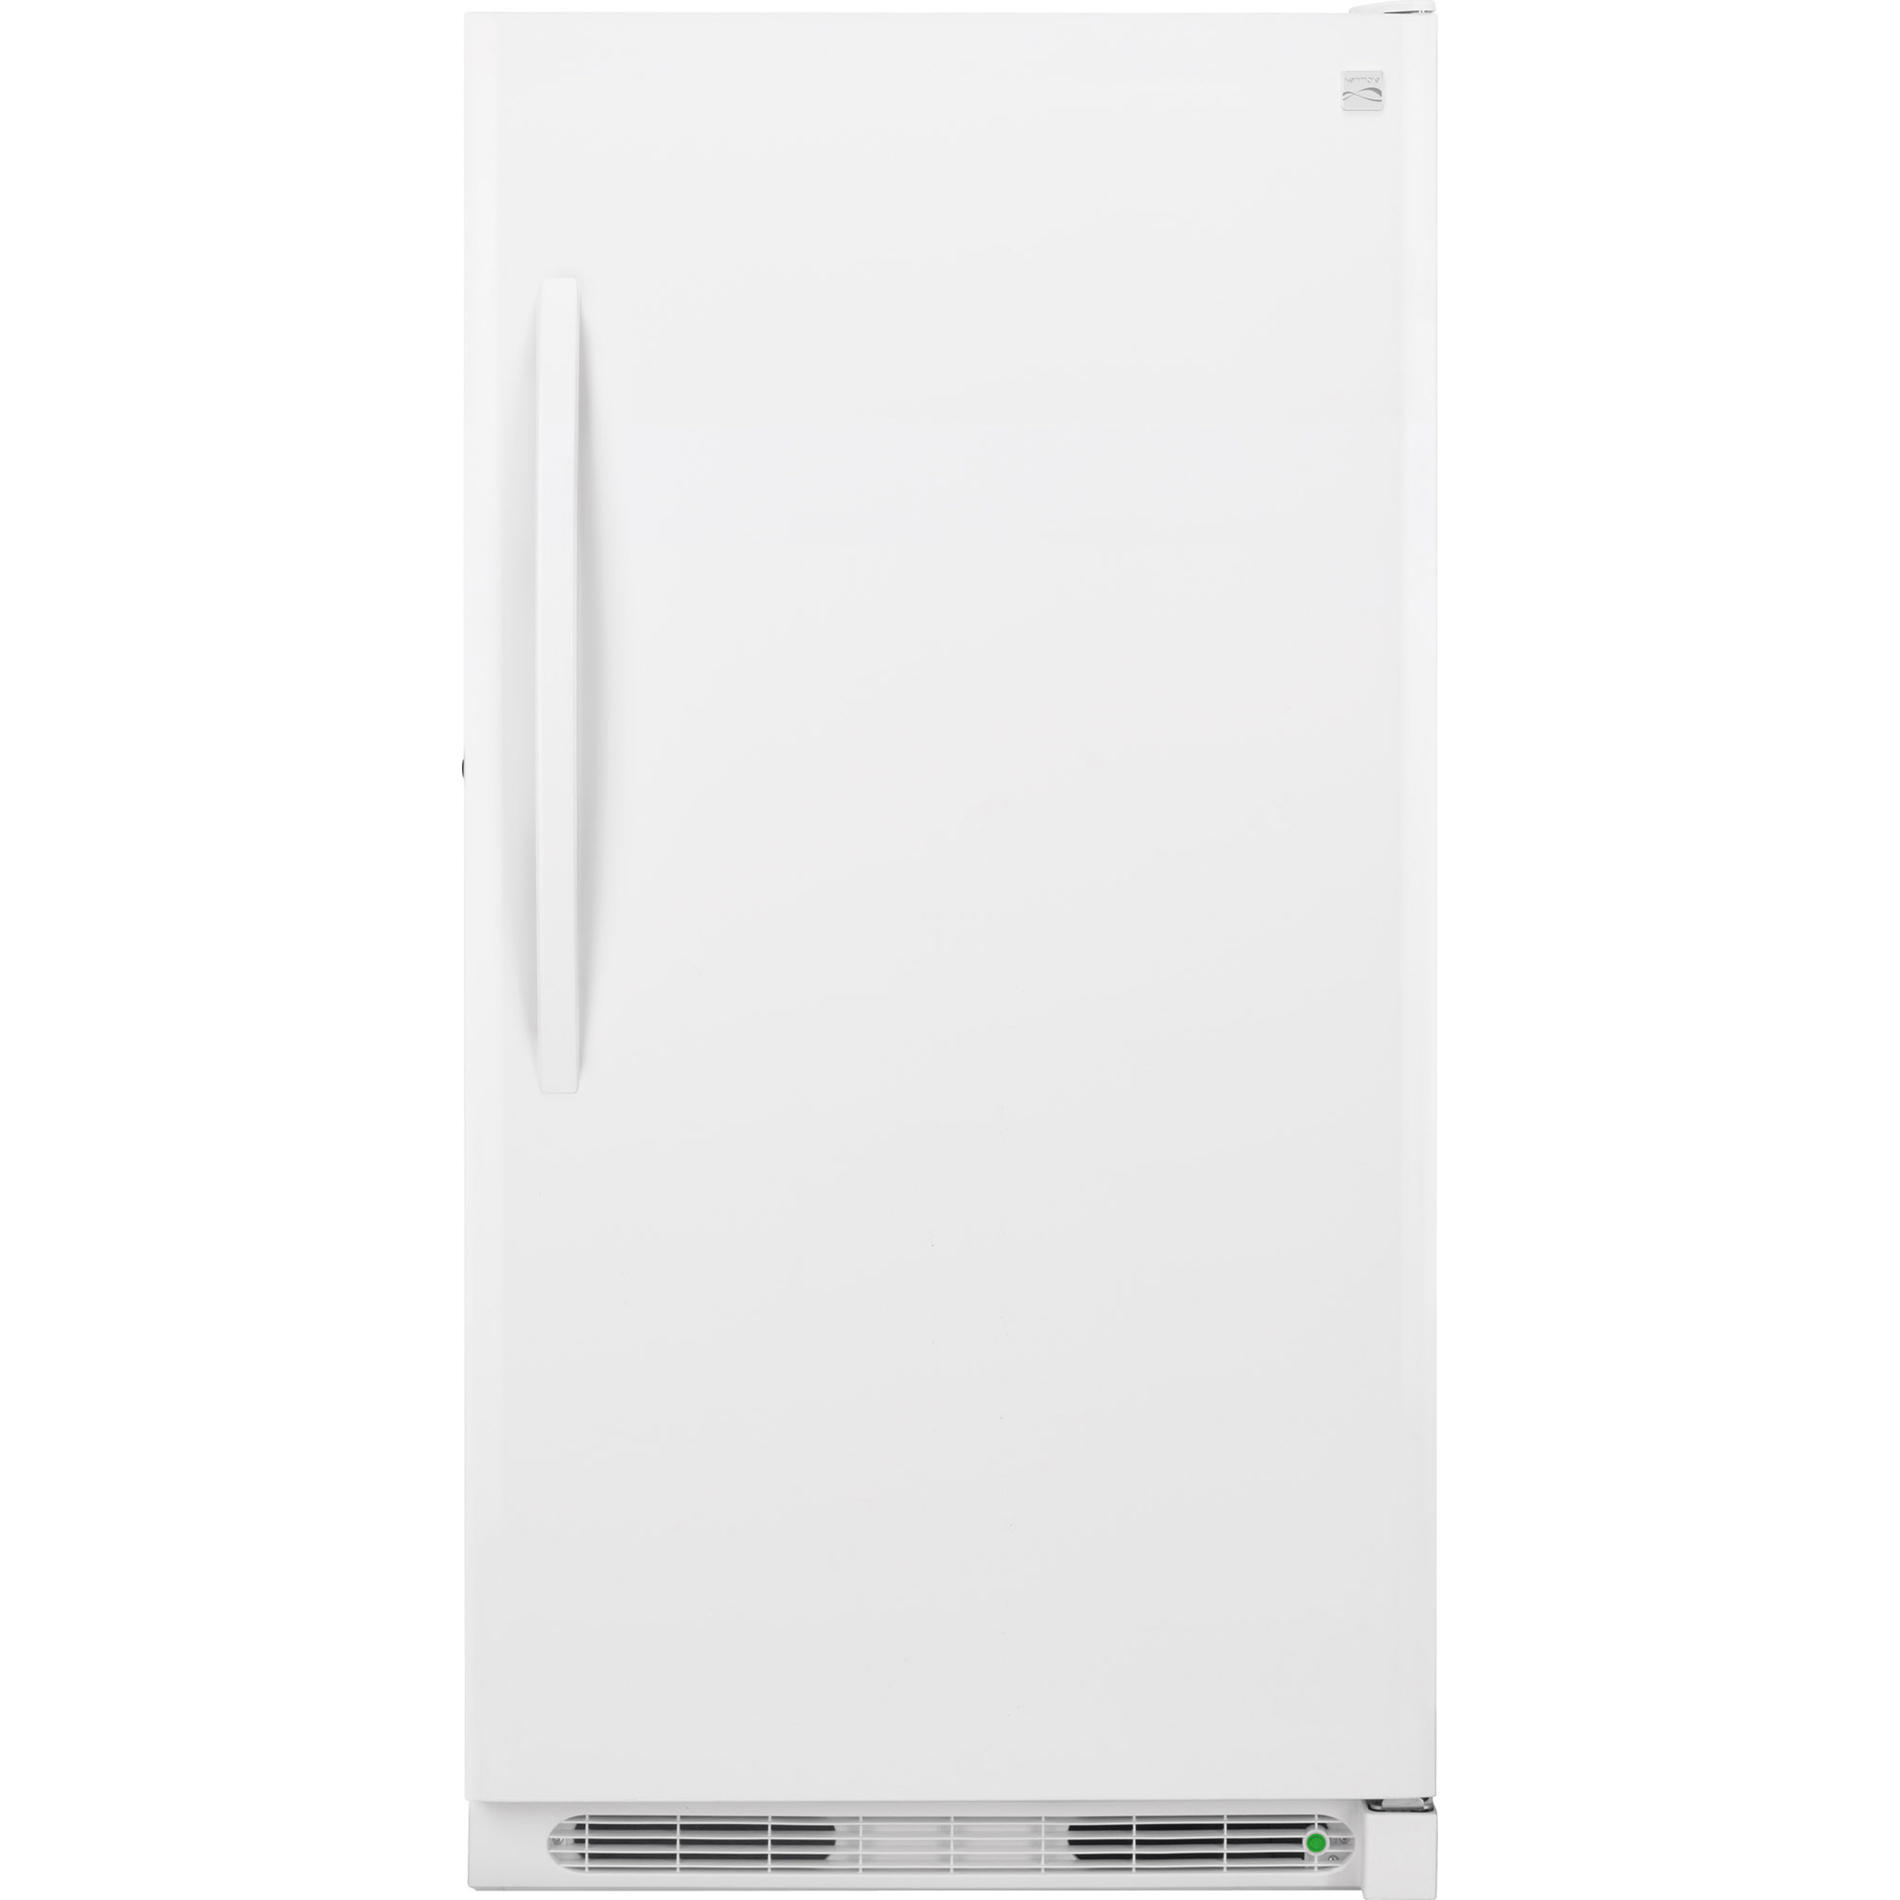 kenmore 22042 20 2 cu ft frost free upright freezer white freezer wiring schematic wire schematic for kenmore upright freezer [ 1900 x 1900 Pixel ]